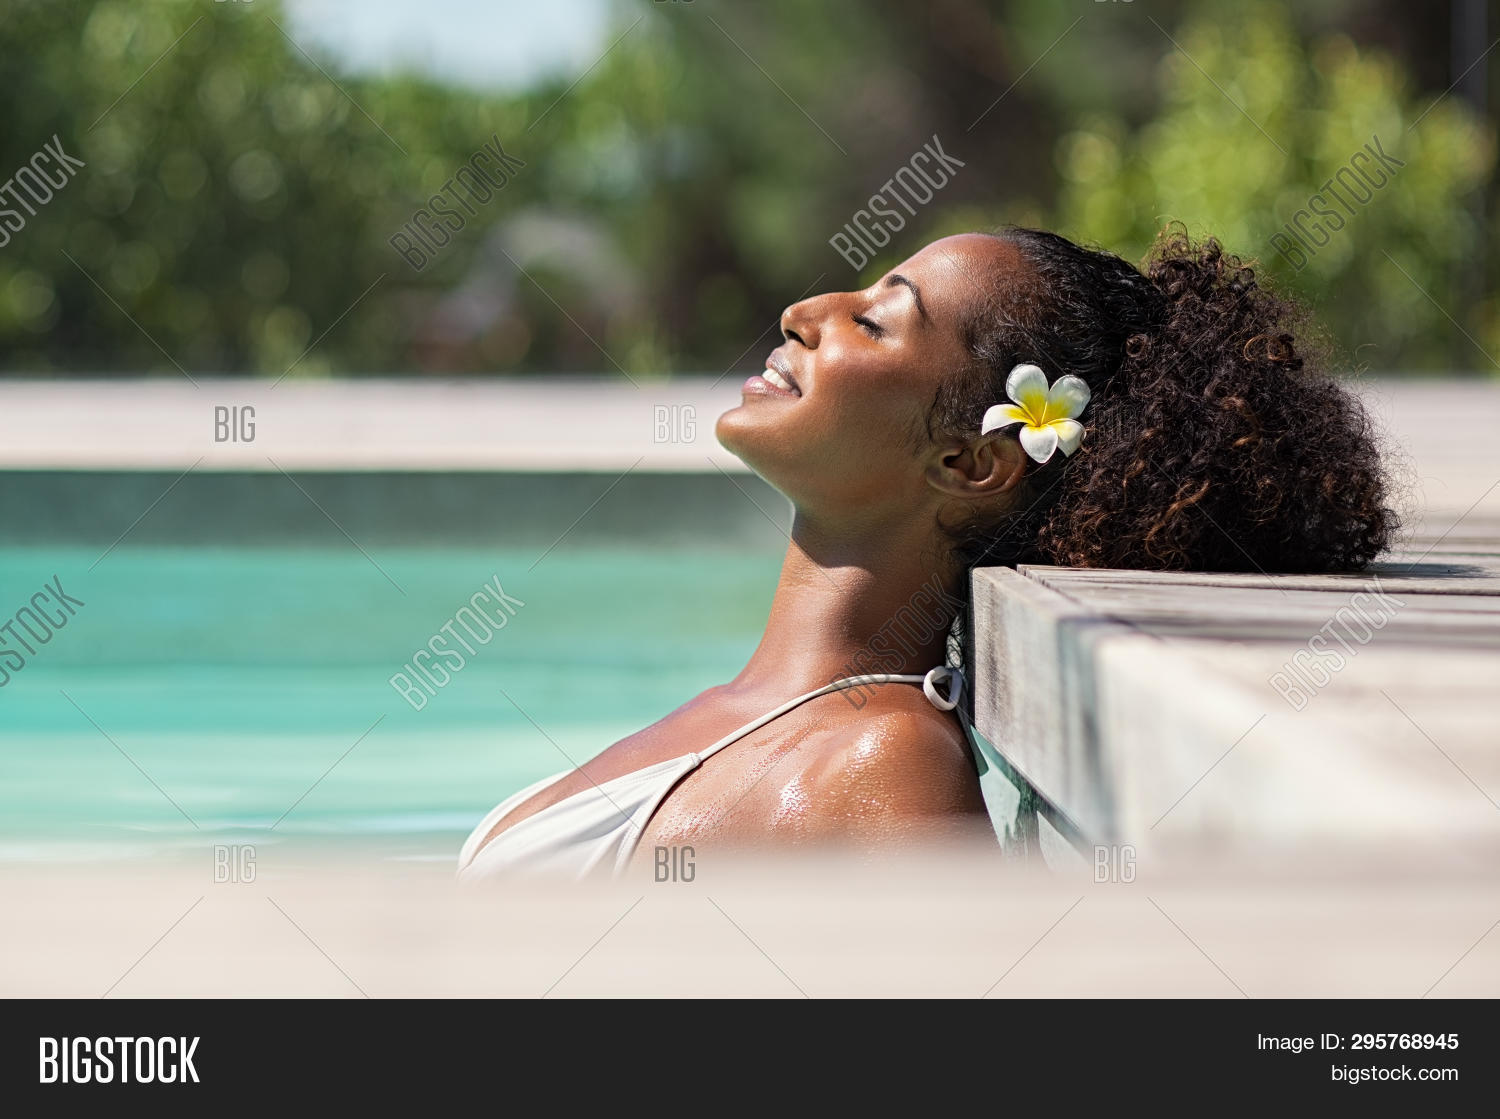 african,african american,african woman,american,attractive,beautiful,beauty,beauty woman,bikini girl,black,care,closed eyes,comfortable,copy space,edge,enjoying,girl,happy,health,hydrotherapy,luxury,outdoor,people,pool side,pool water,poolside,relax,relaxation,resort,resort pool,resort spa,resting,skin,skin care,smile,spa,spa day,summer,sun bathing,sunbathing,swimming,swimming pool,tan,tanned woman,travel,vacation,water,wellness,woman,young